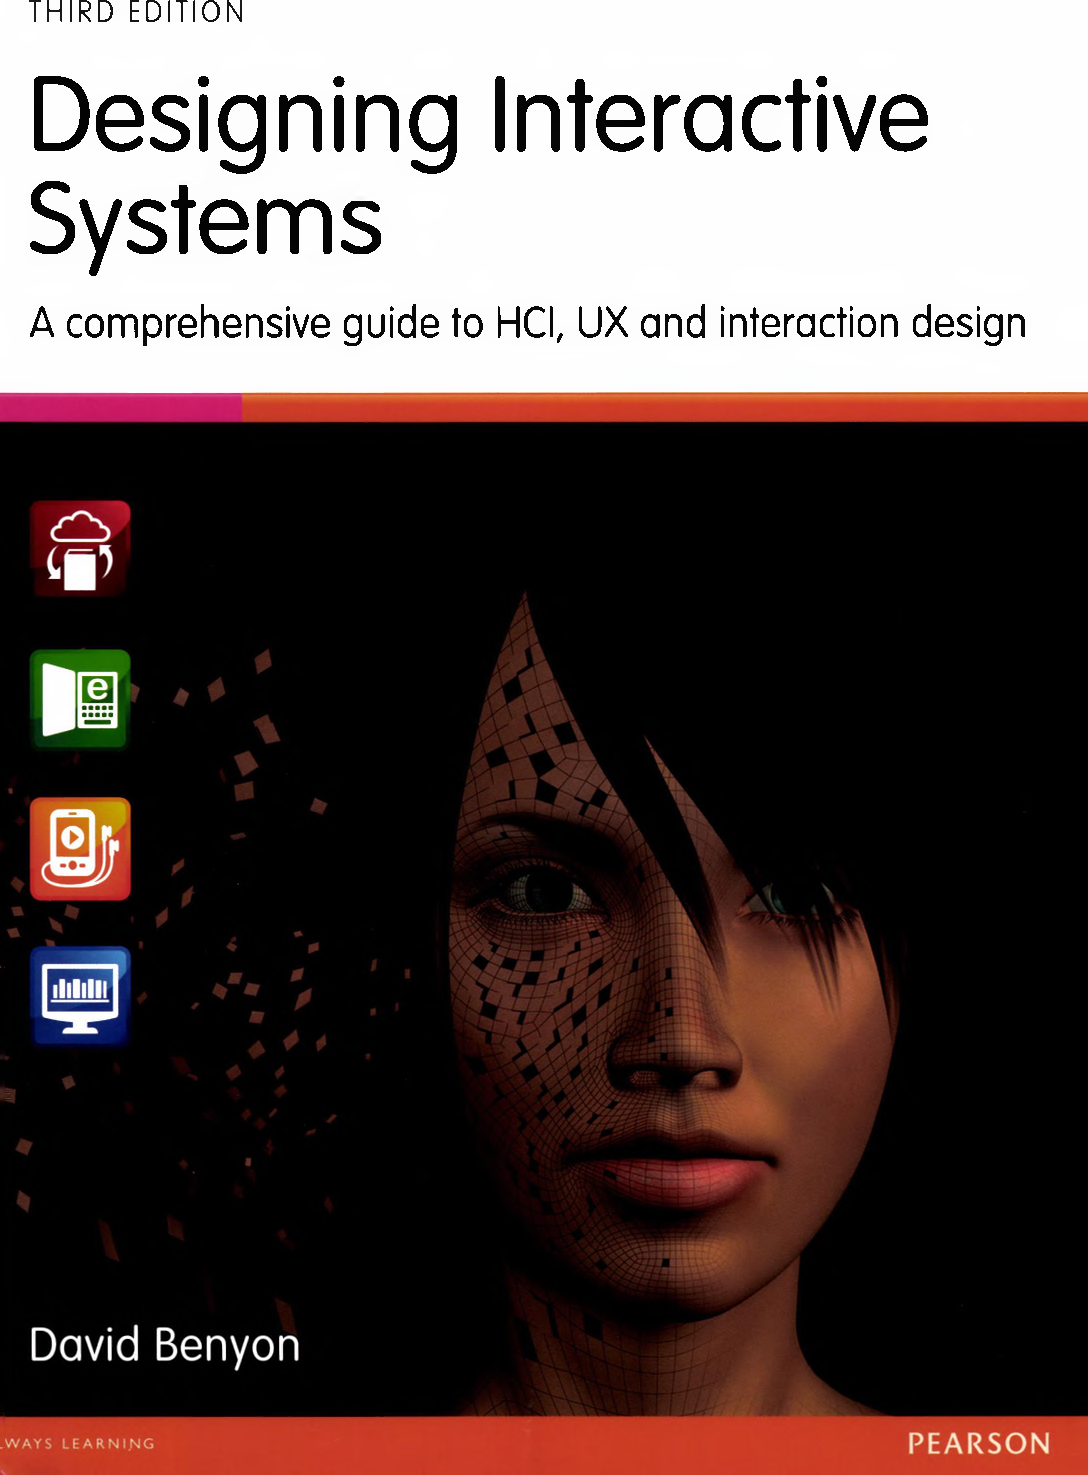 Designing Interactive Systems A Comprehensive Guide To Hci Ux And Interaction Design 3rd Edition Ibook4all Com